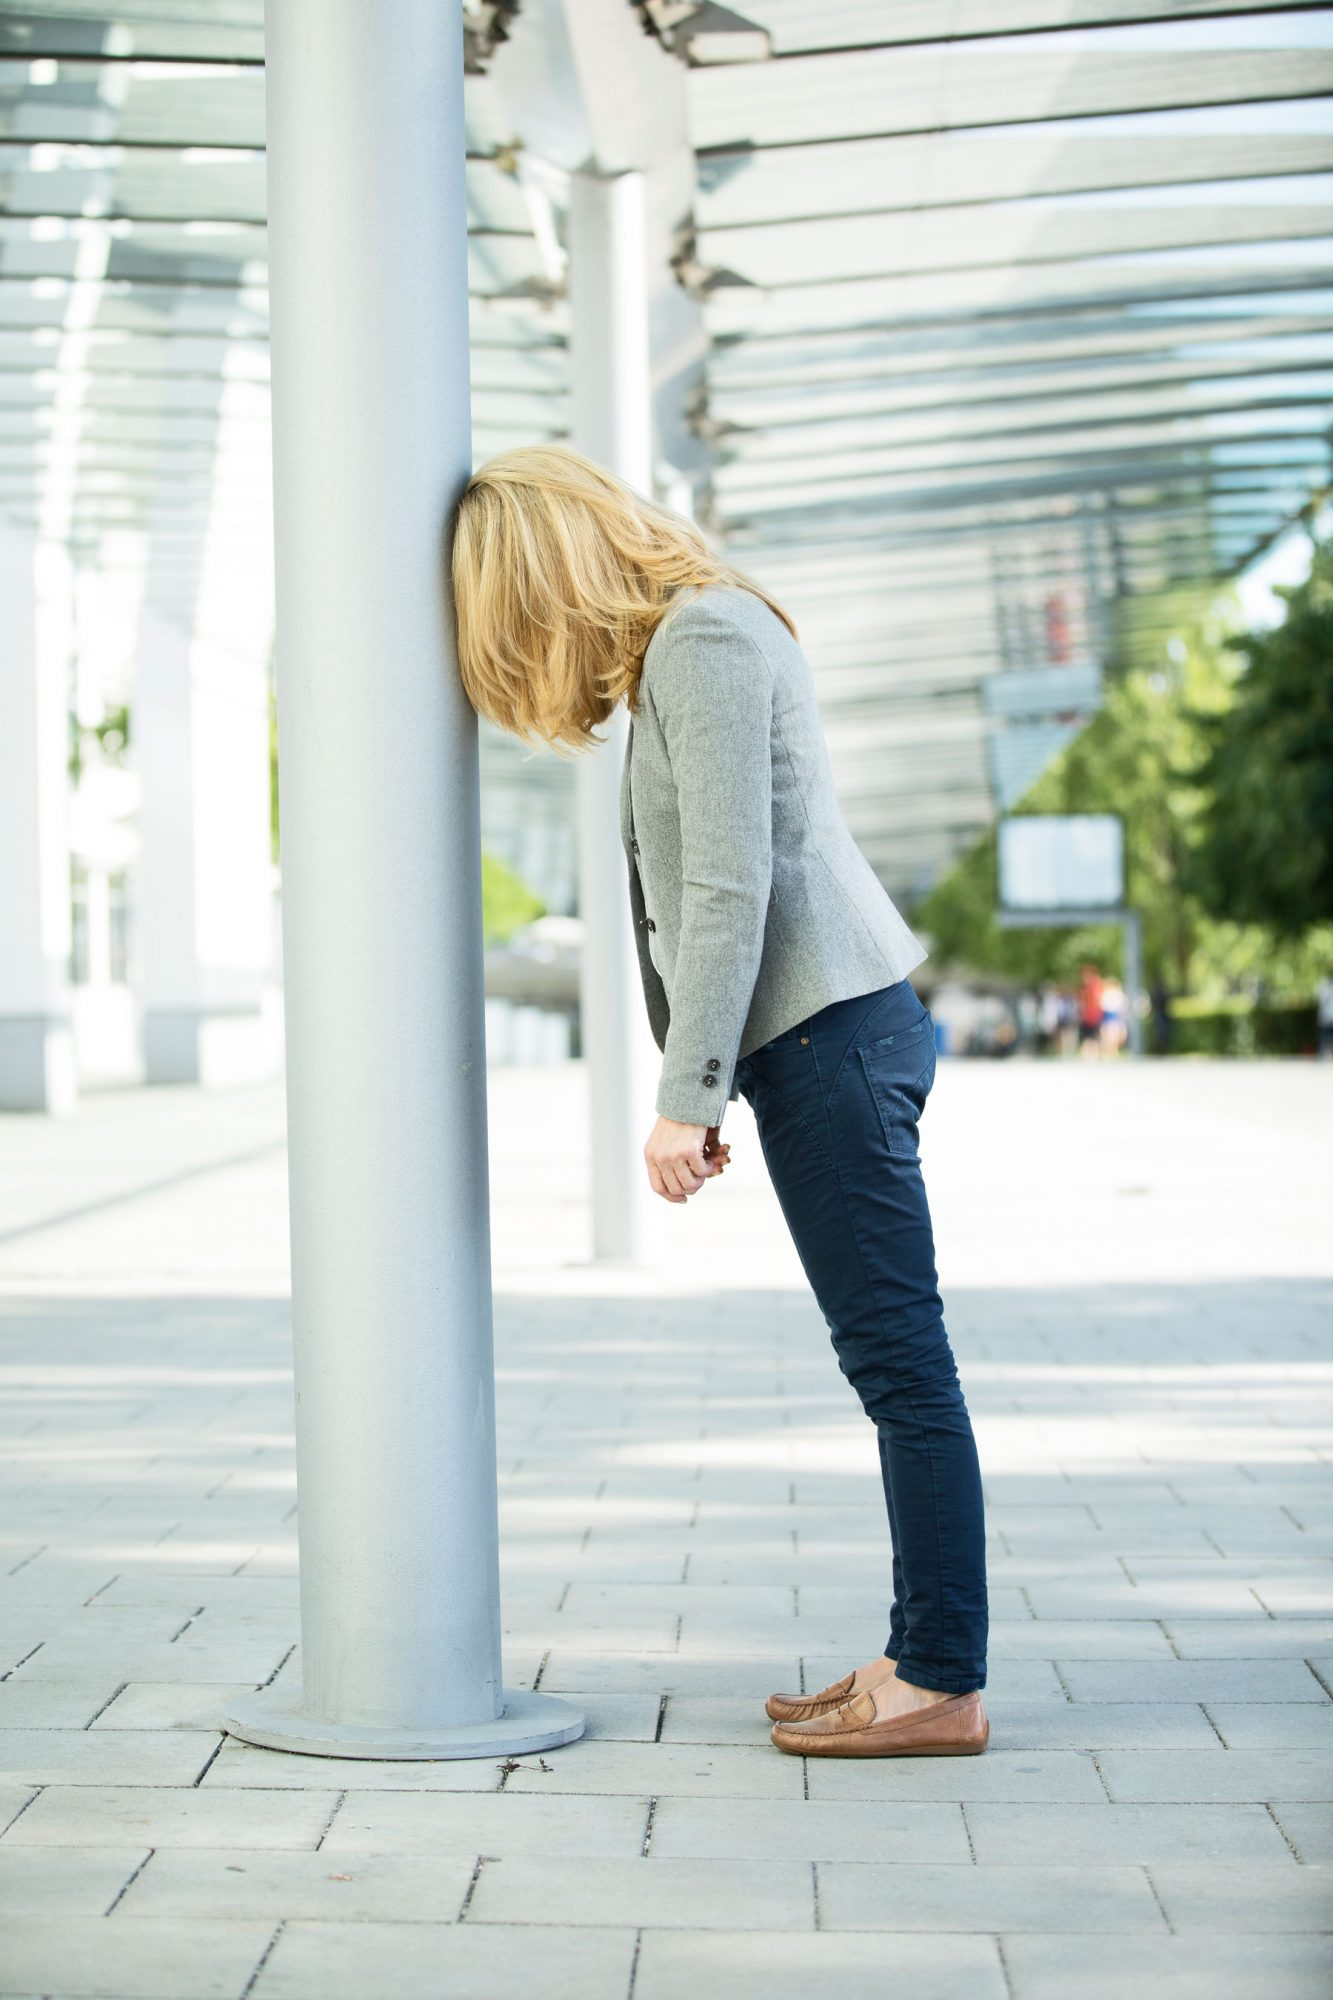 Stressed woman leaning against pole, head down